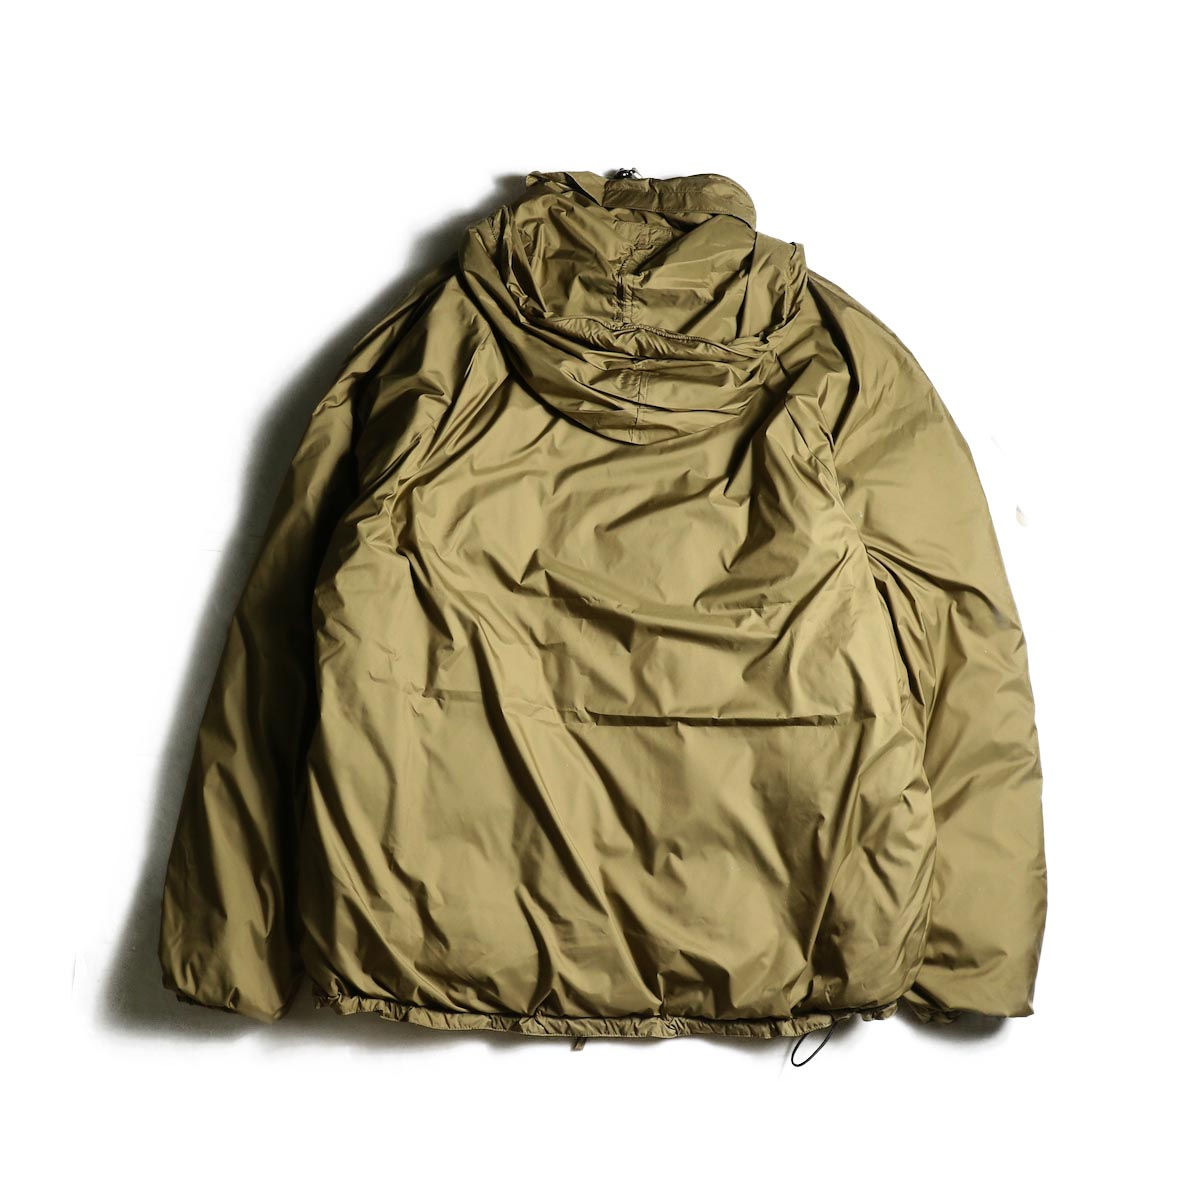 J&S Franklin / BRITISH ARMY PCS LIGHT WEIGHT DOWN JACKET (Coyote) 背面